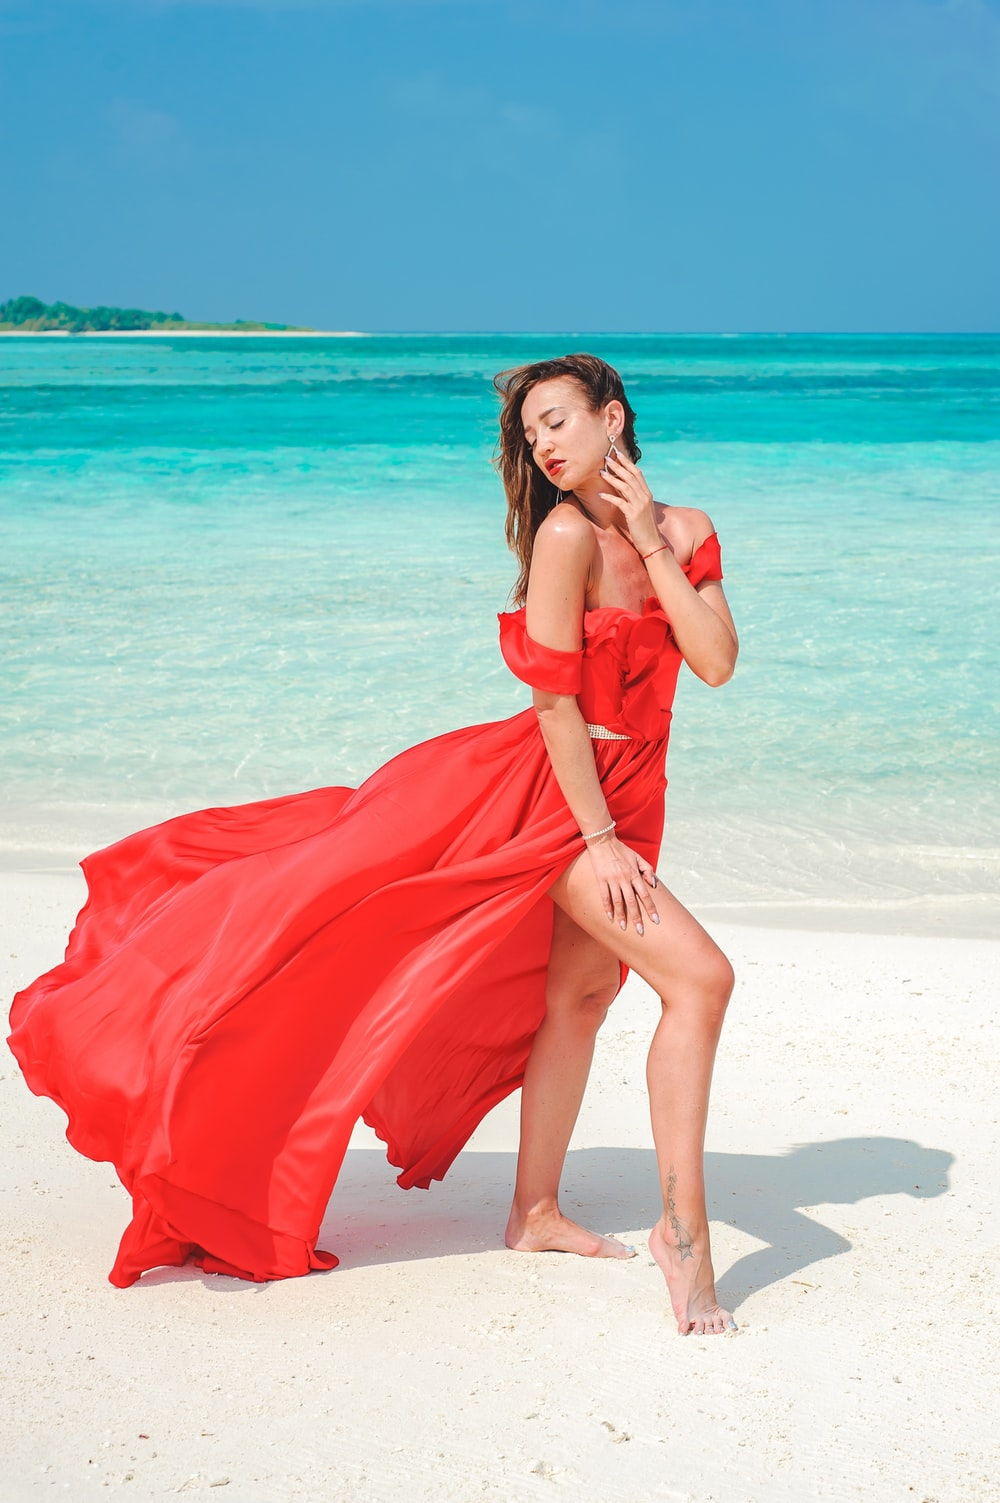 woman in red tube dress standing on beach during daytime